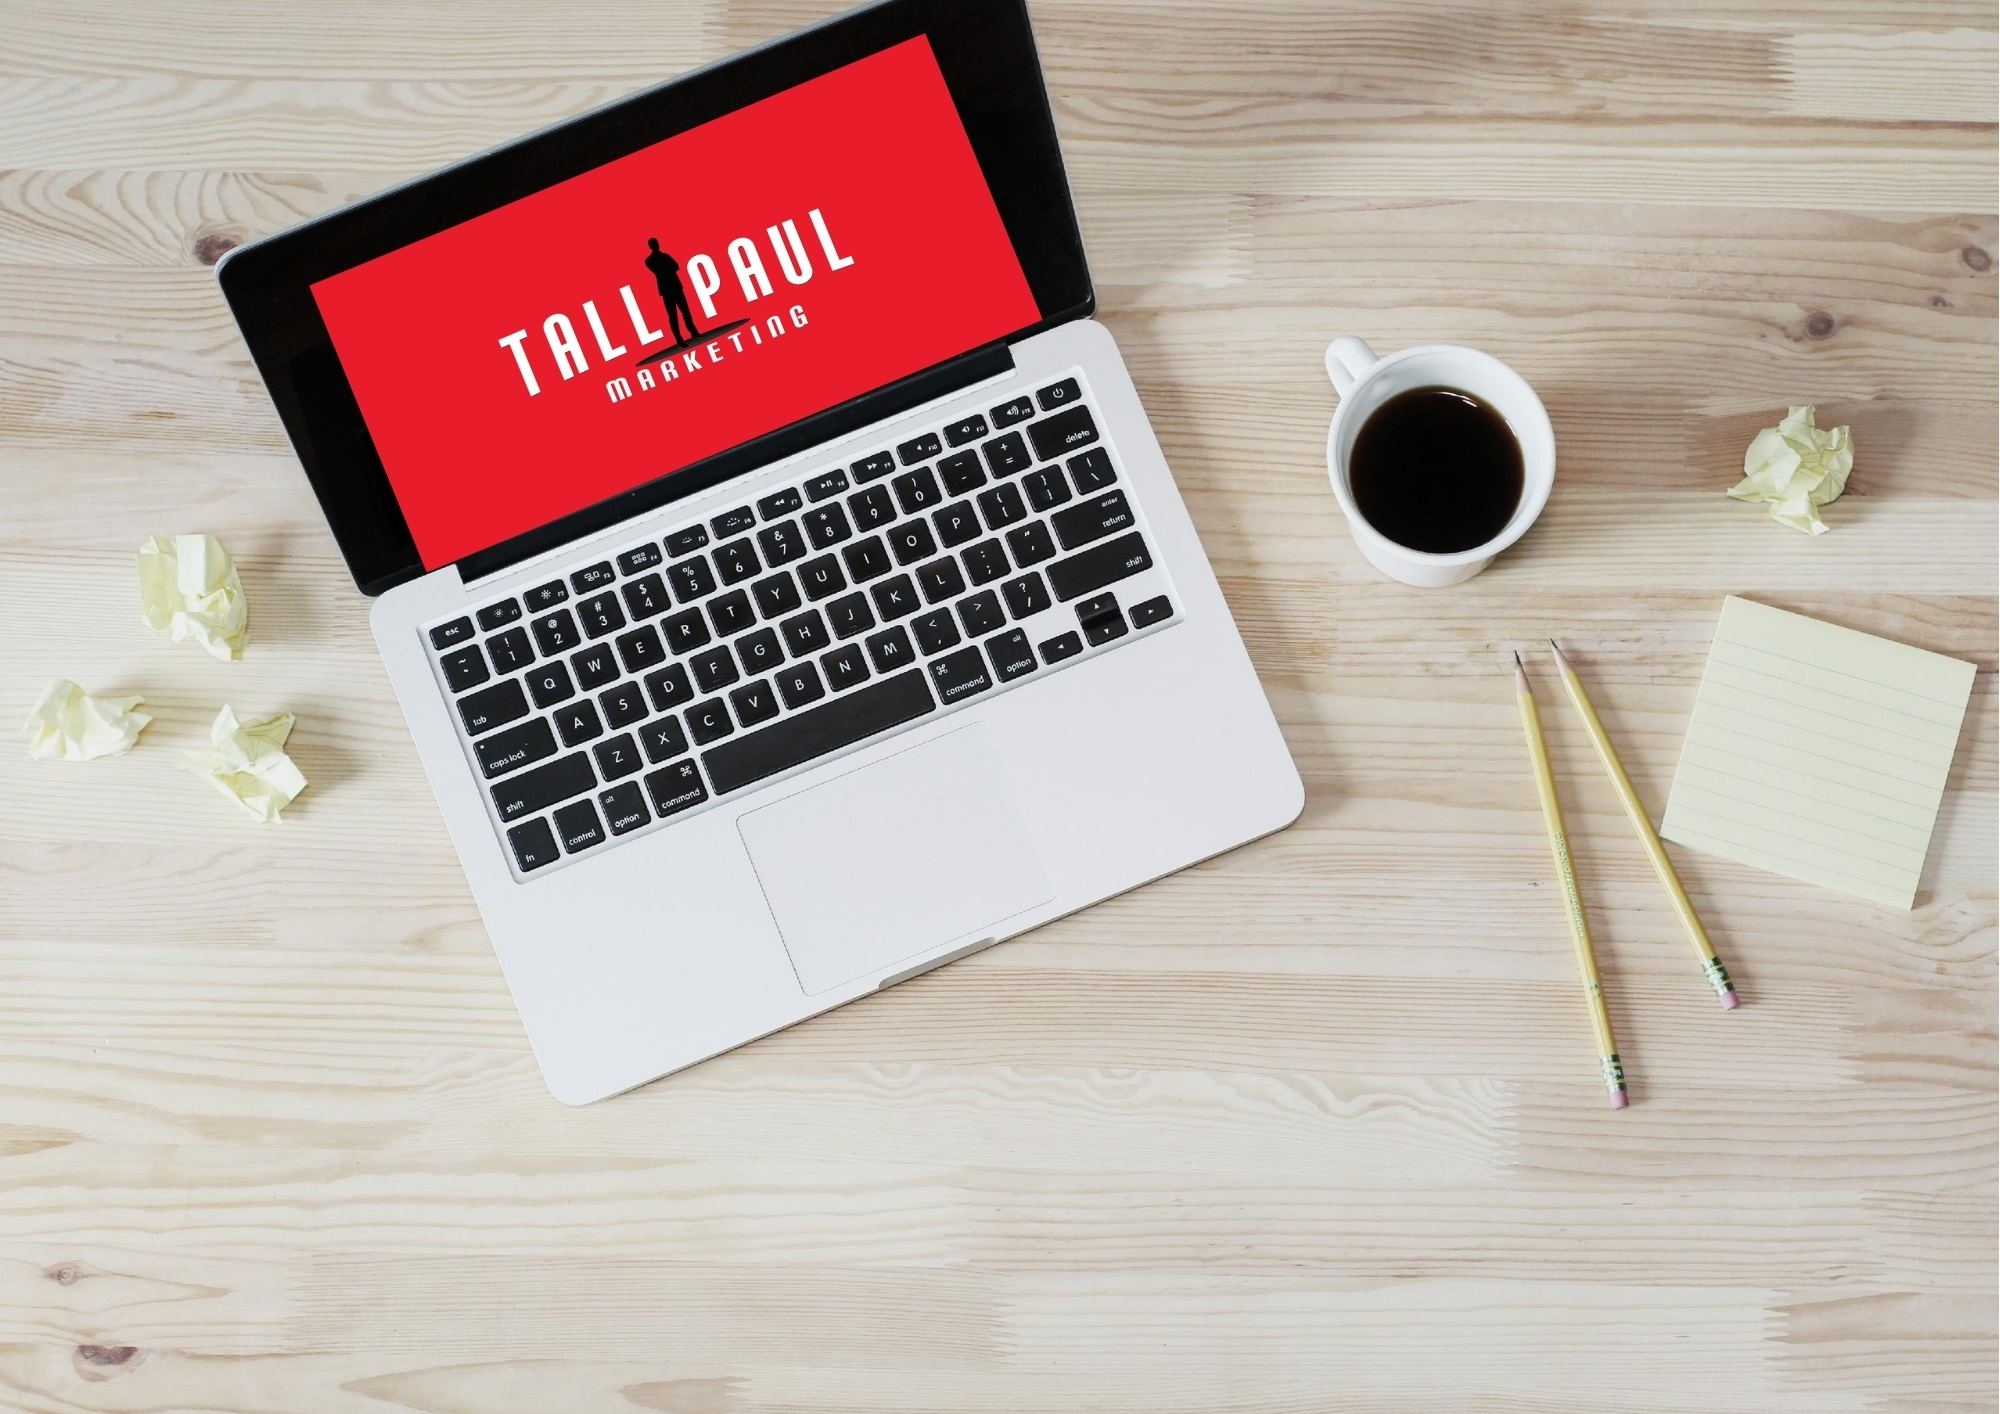 Business blogs in 2020 are low-cost and easy to set up - Tall Paul Marketing - Northern Ireland Copywriter